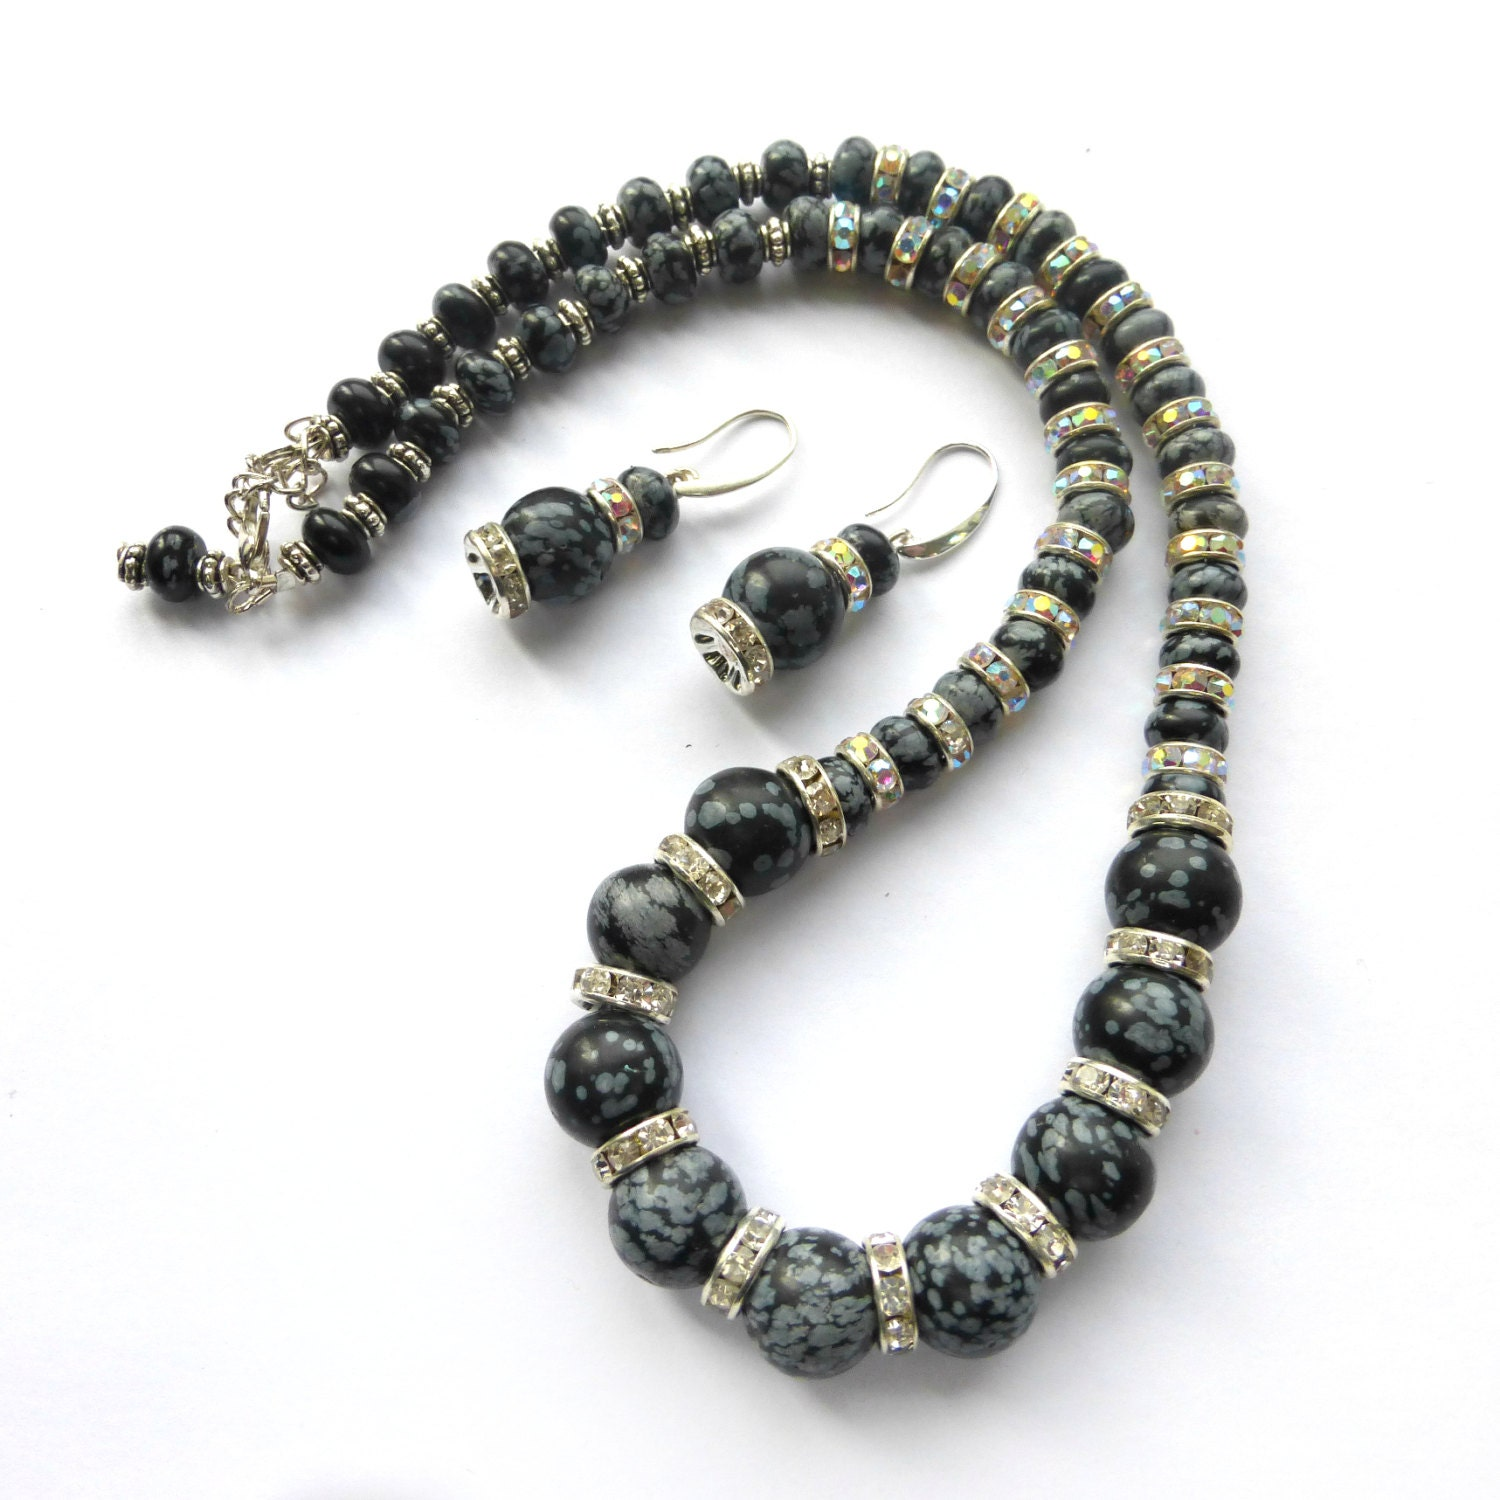 classic black snowflake obsidian necklace earrings jewelry set